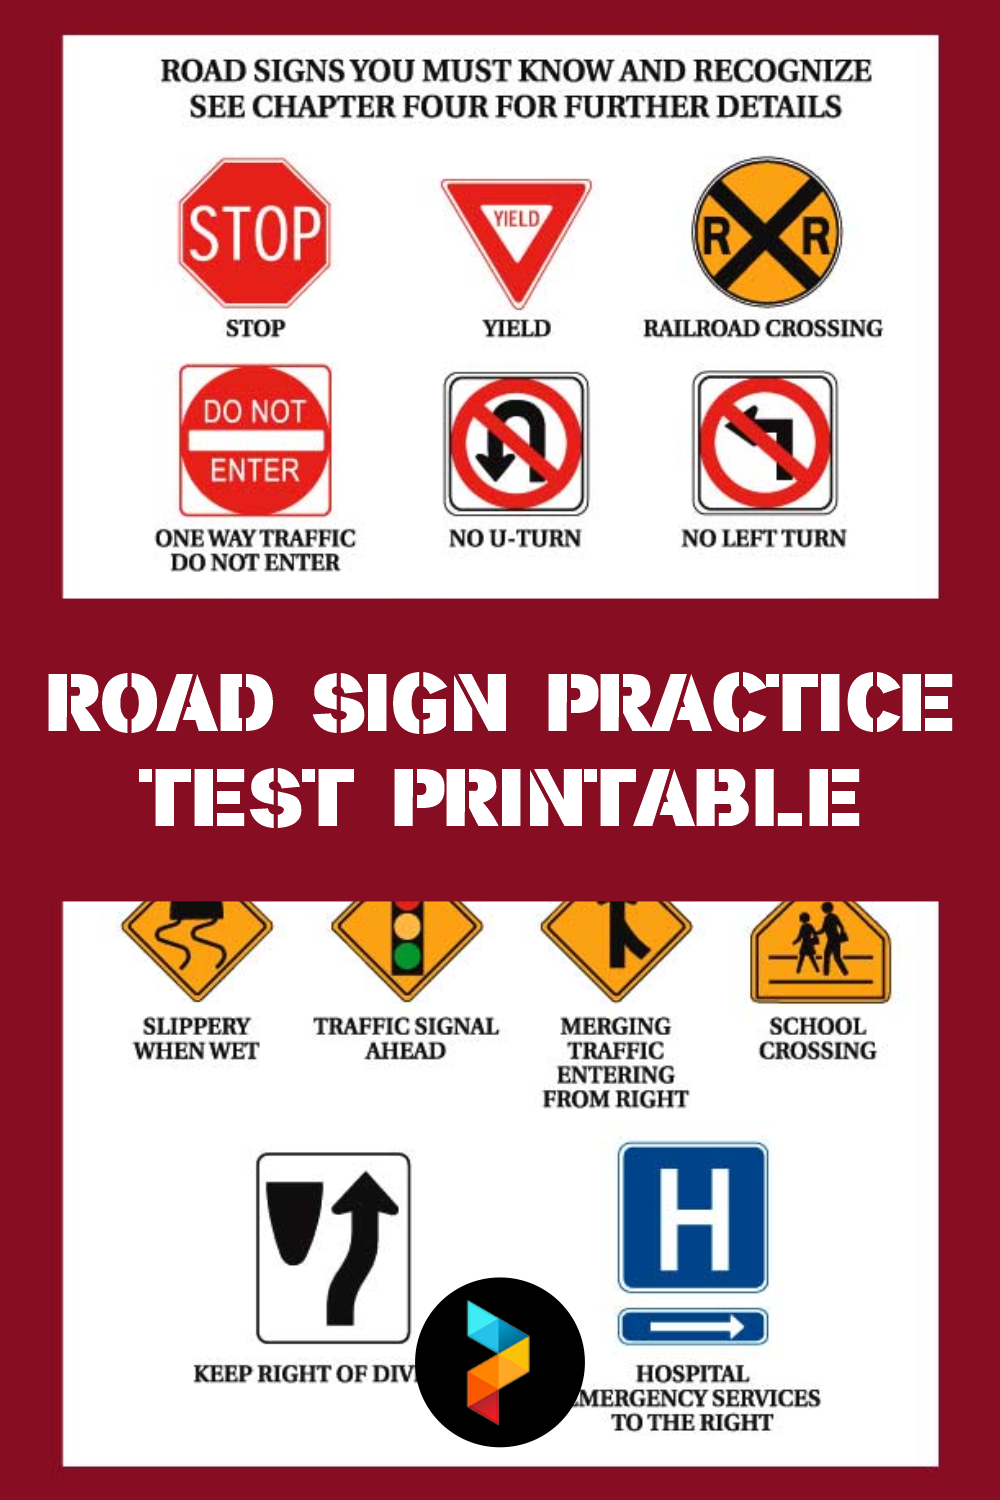 Road Sign Practice Test Printable